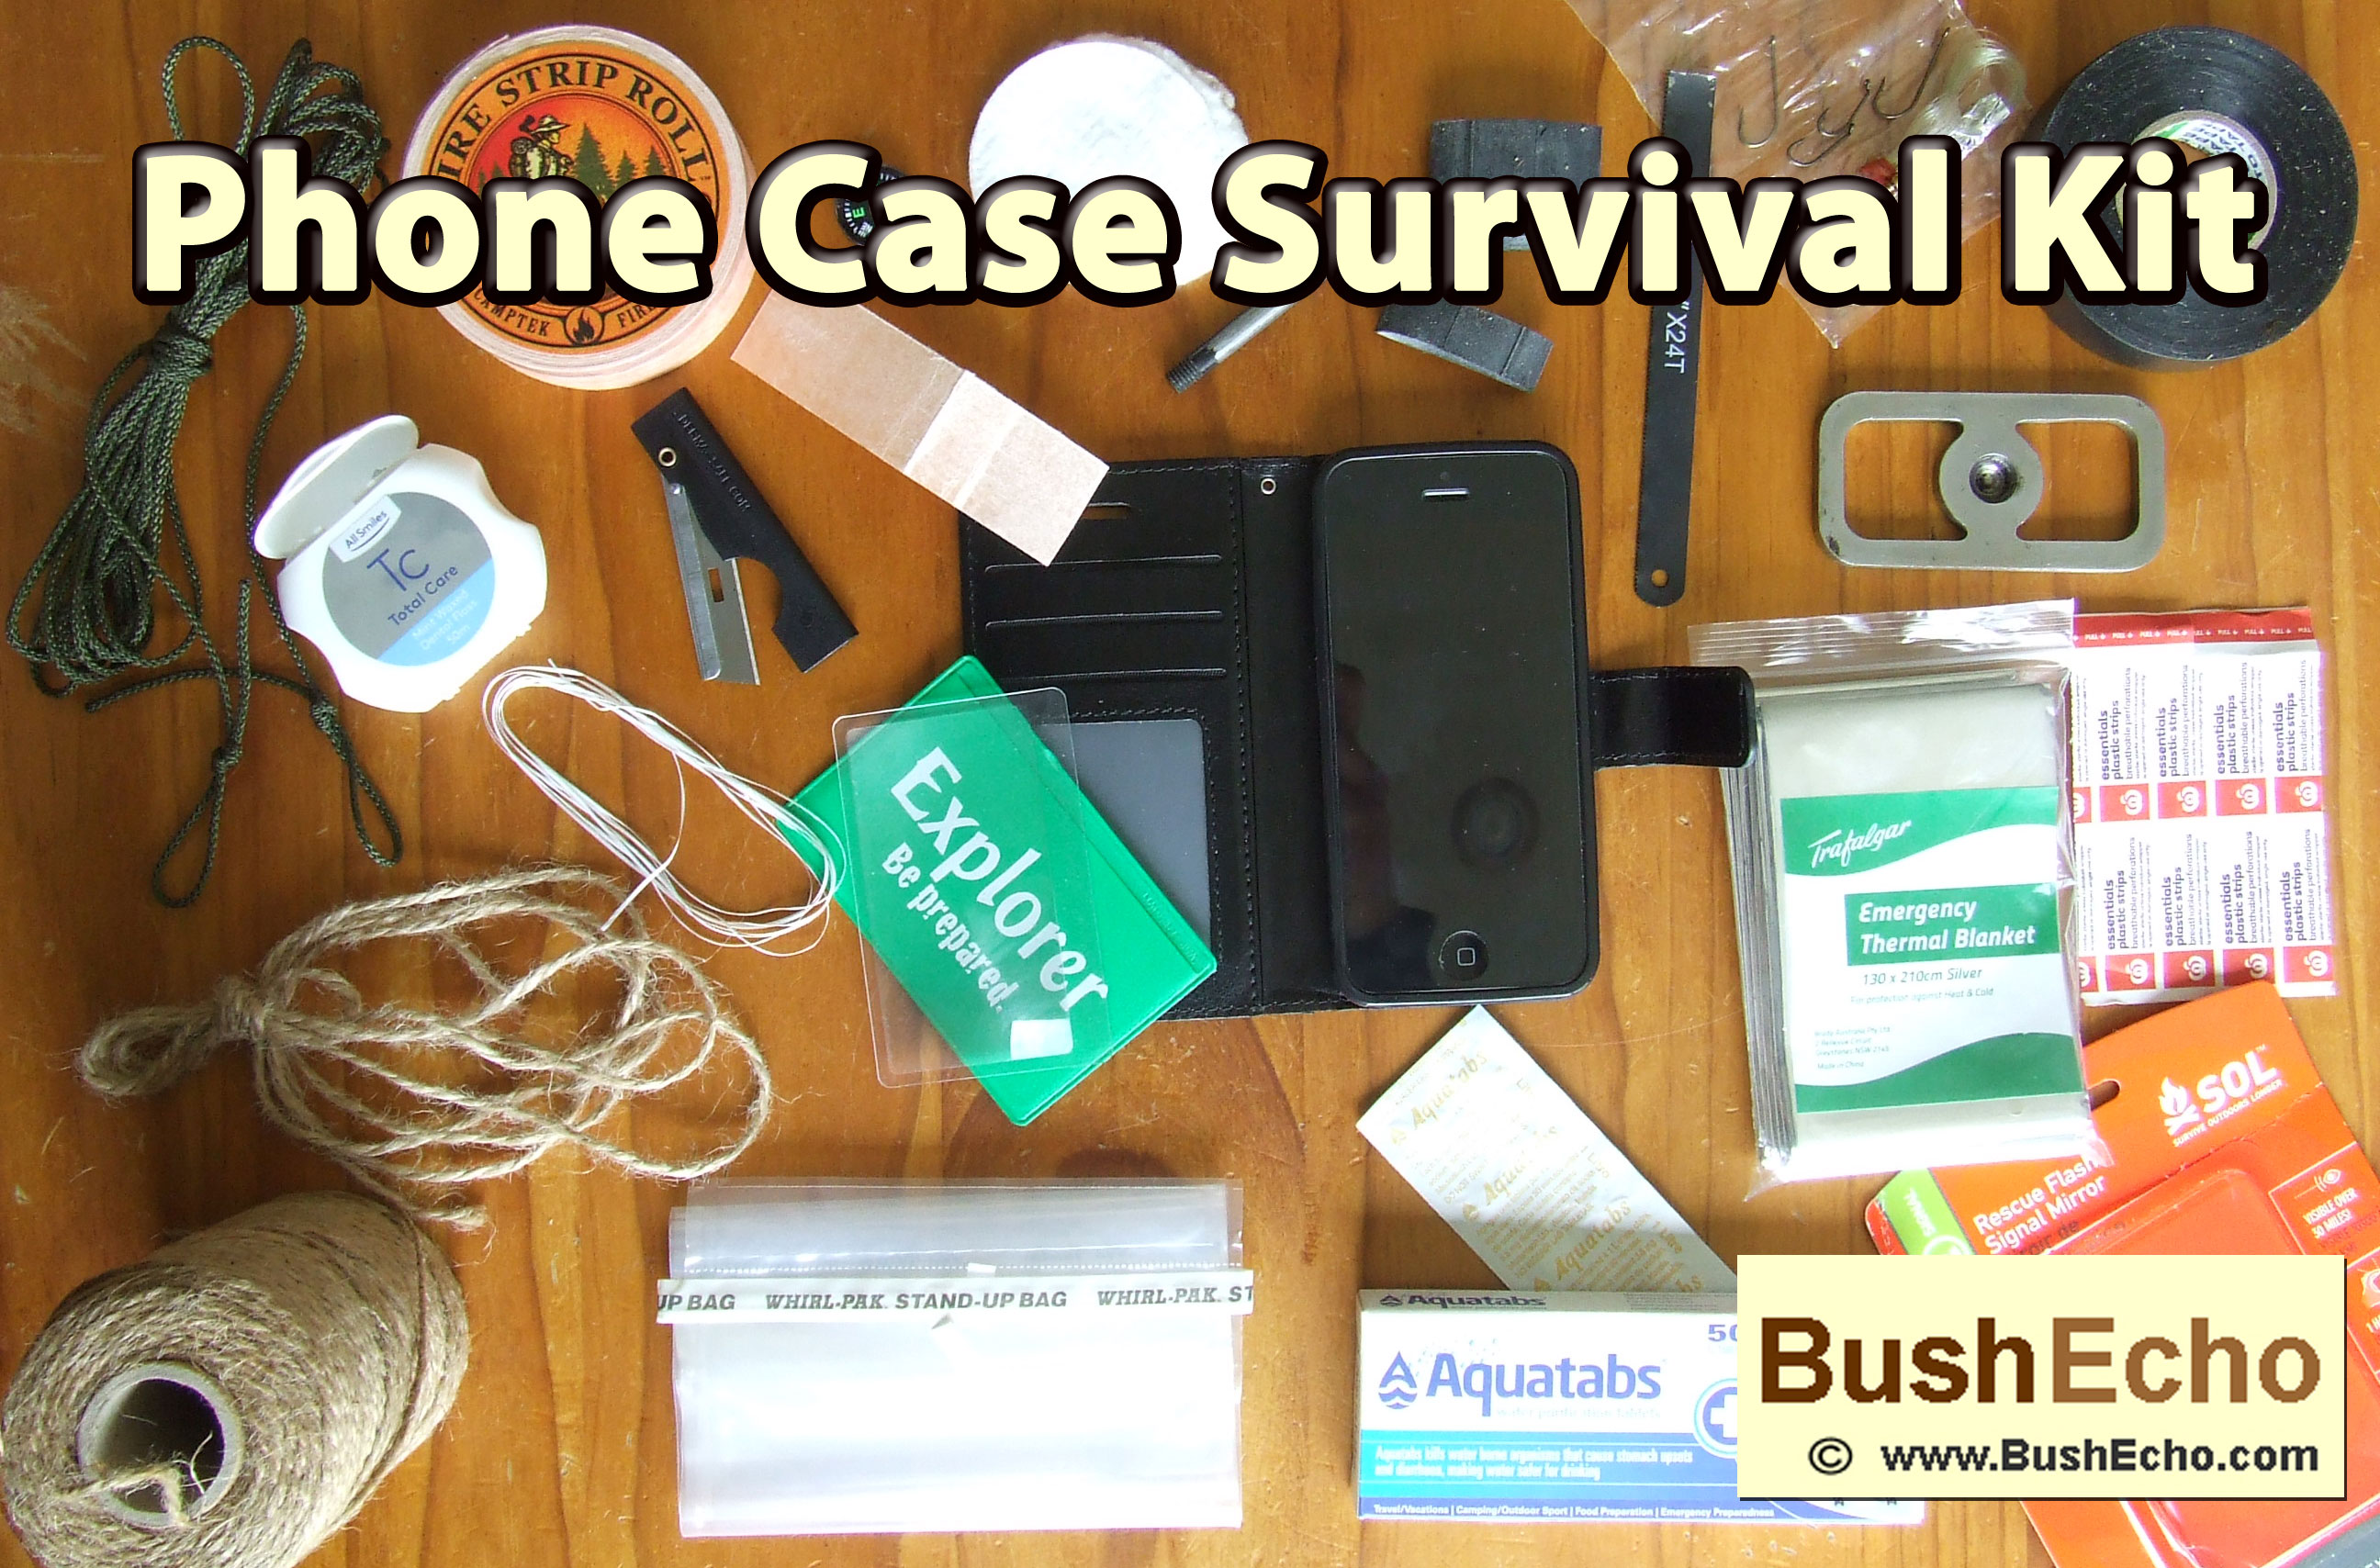 Phone Case Survival Kit Options.